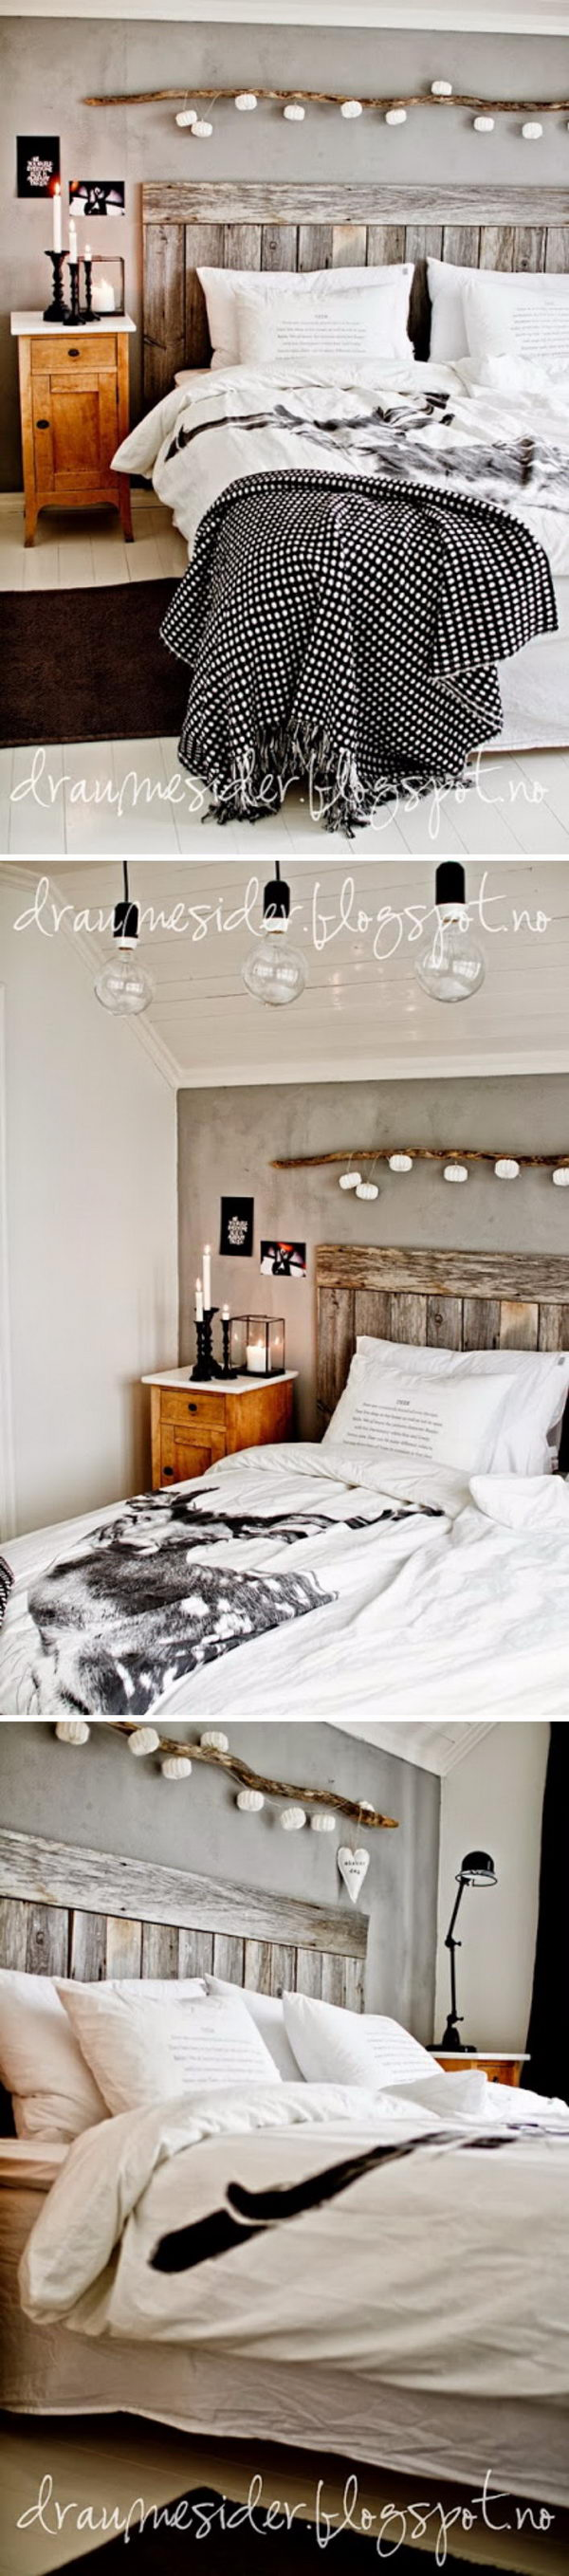 30 Rustic Wood Headboard DIY Ideas